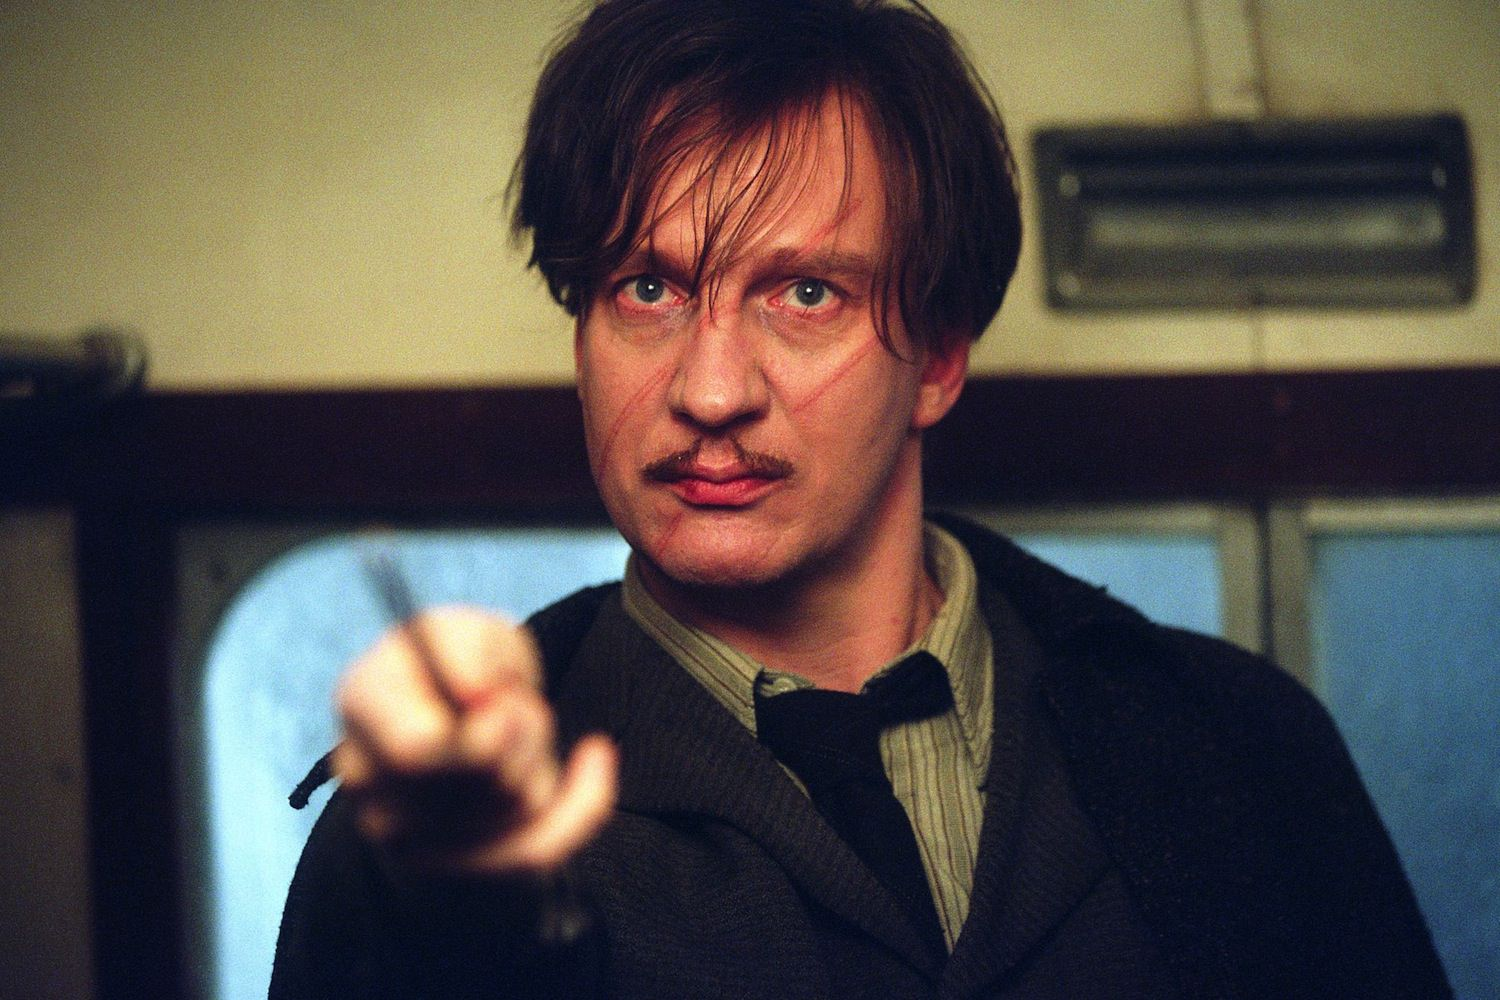 Harry potter prisonnier azkaban david thewlis